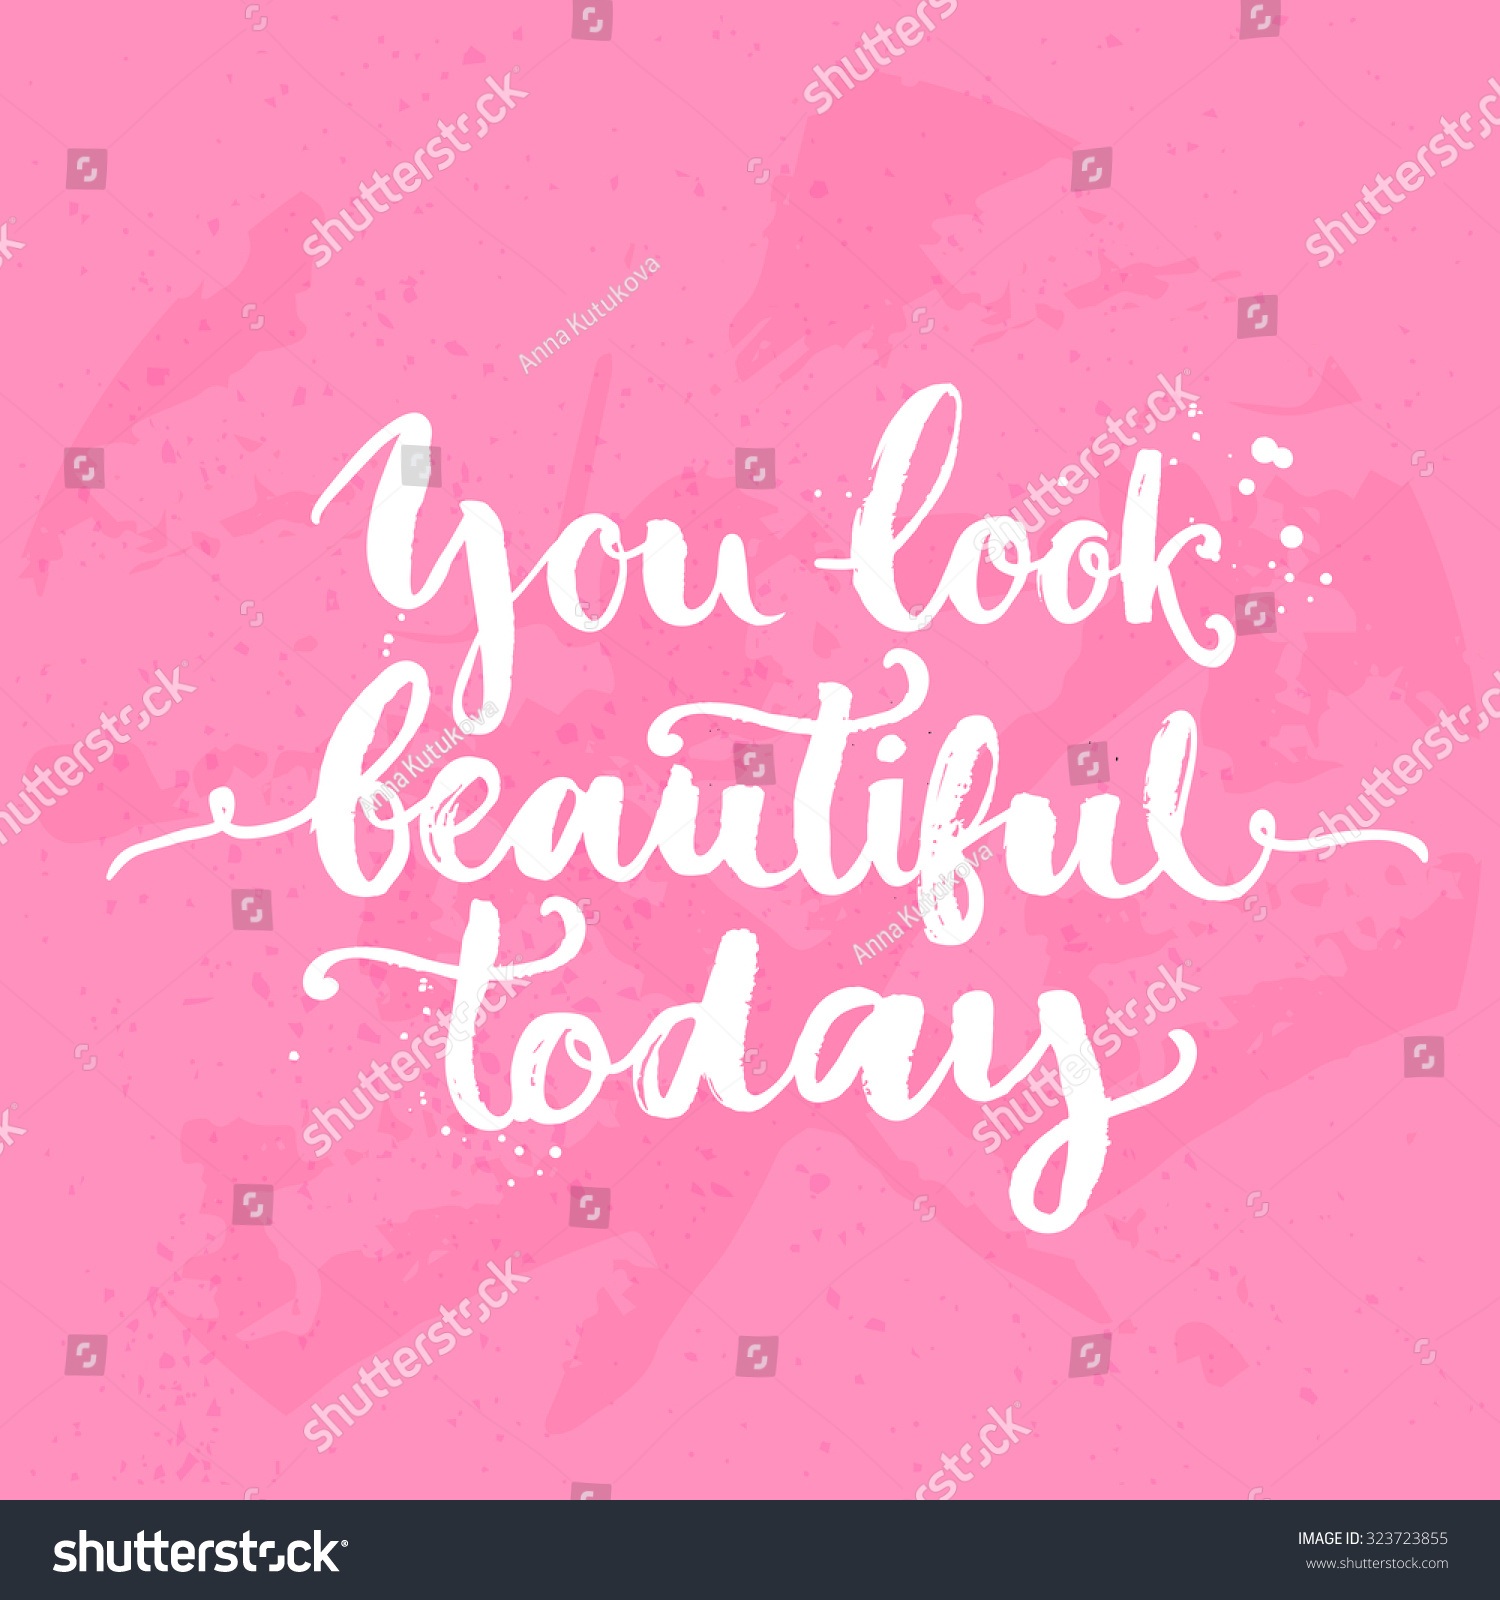 Quotes You Are Beautiful You Look Beautiful Today Inspirational Quote Stock Vector